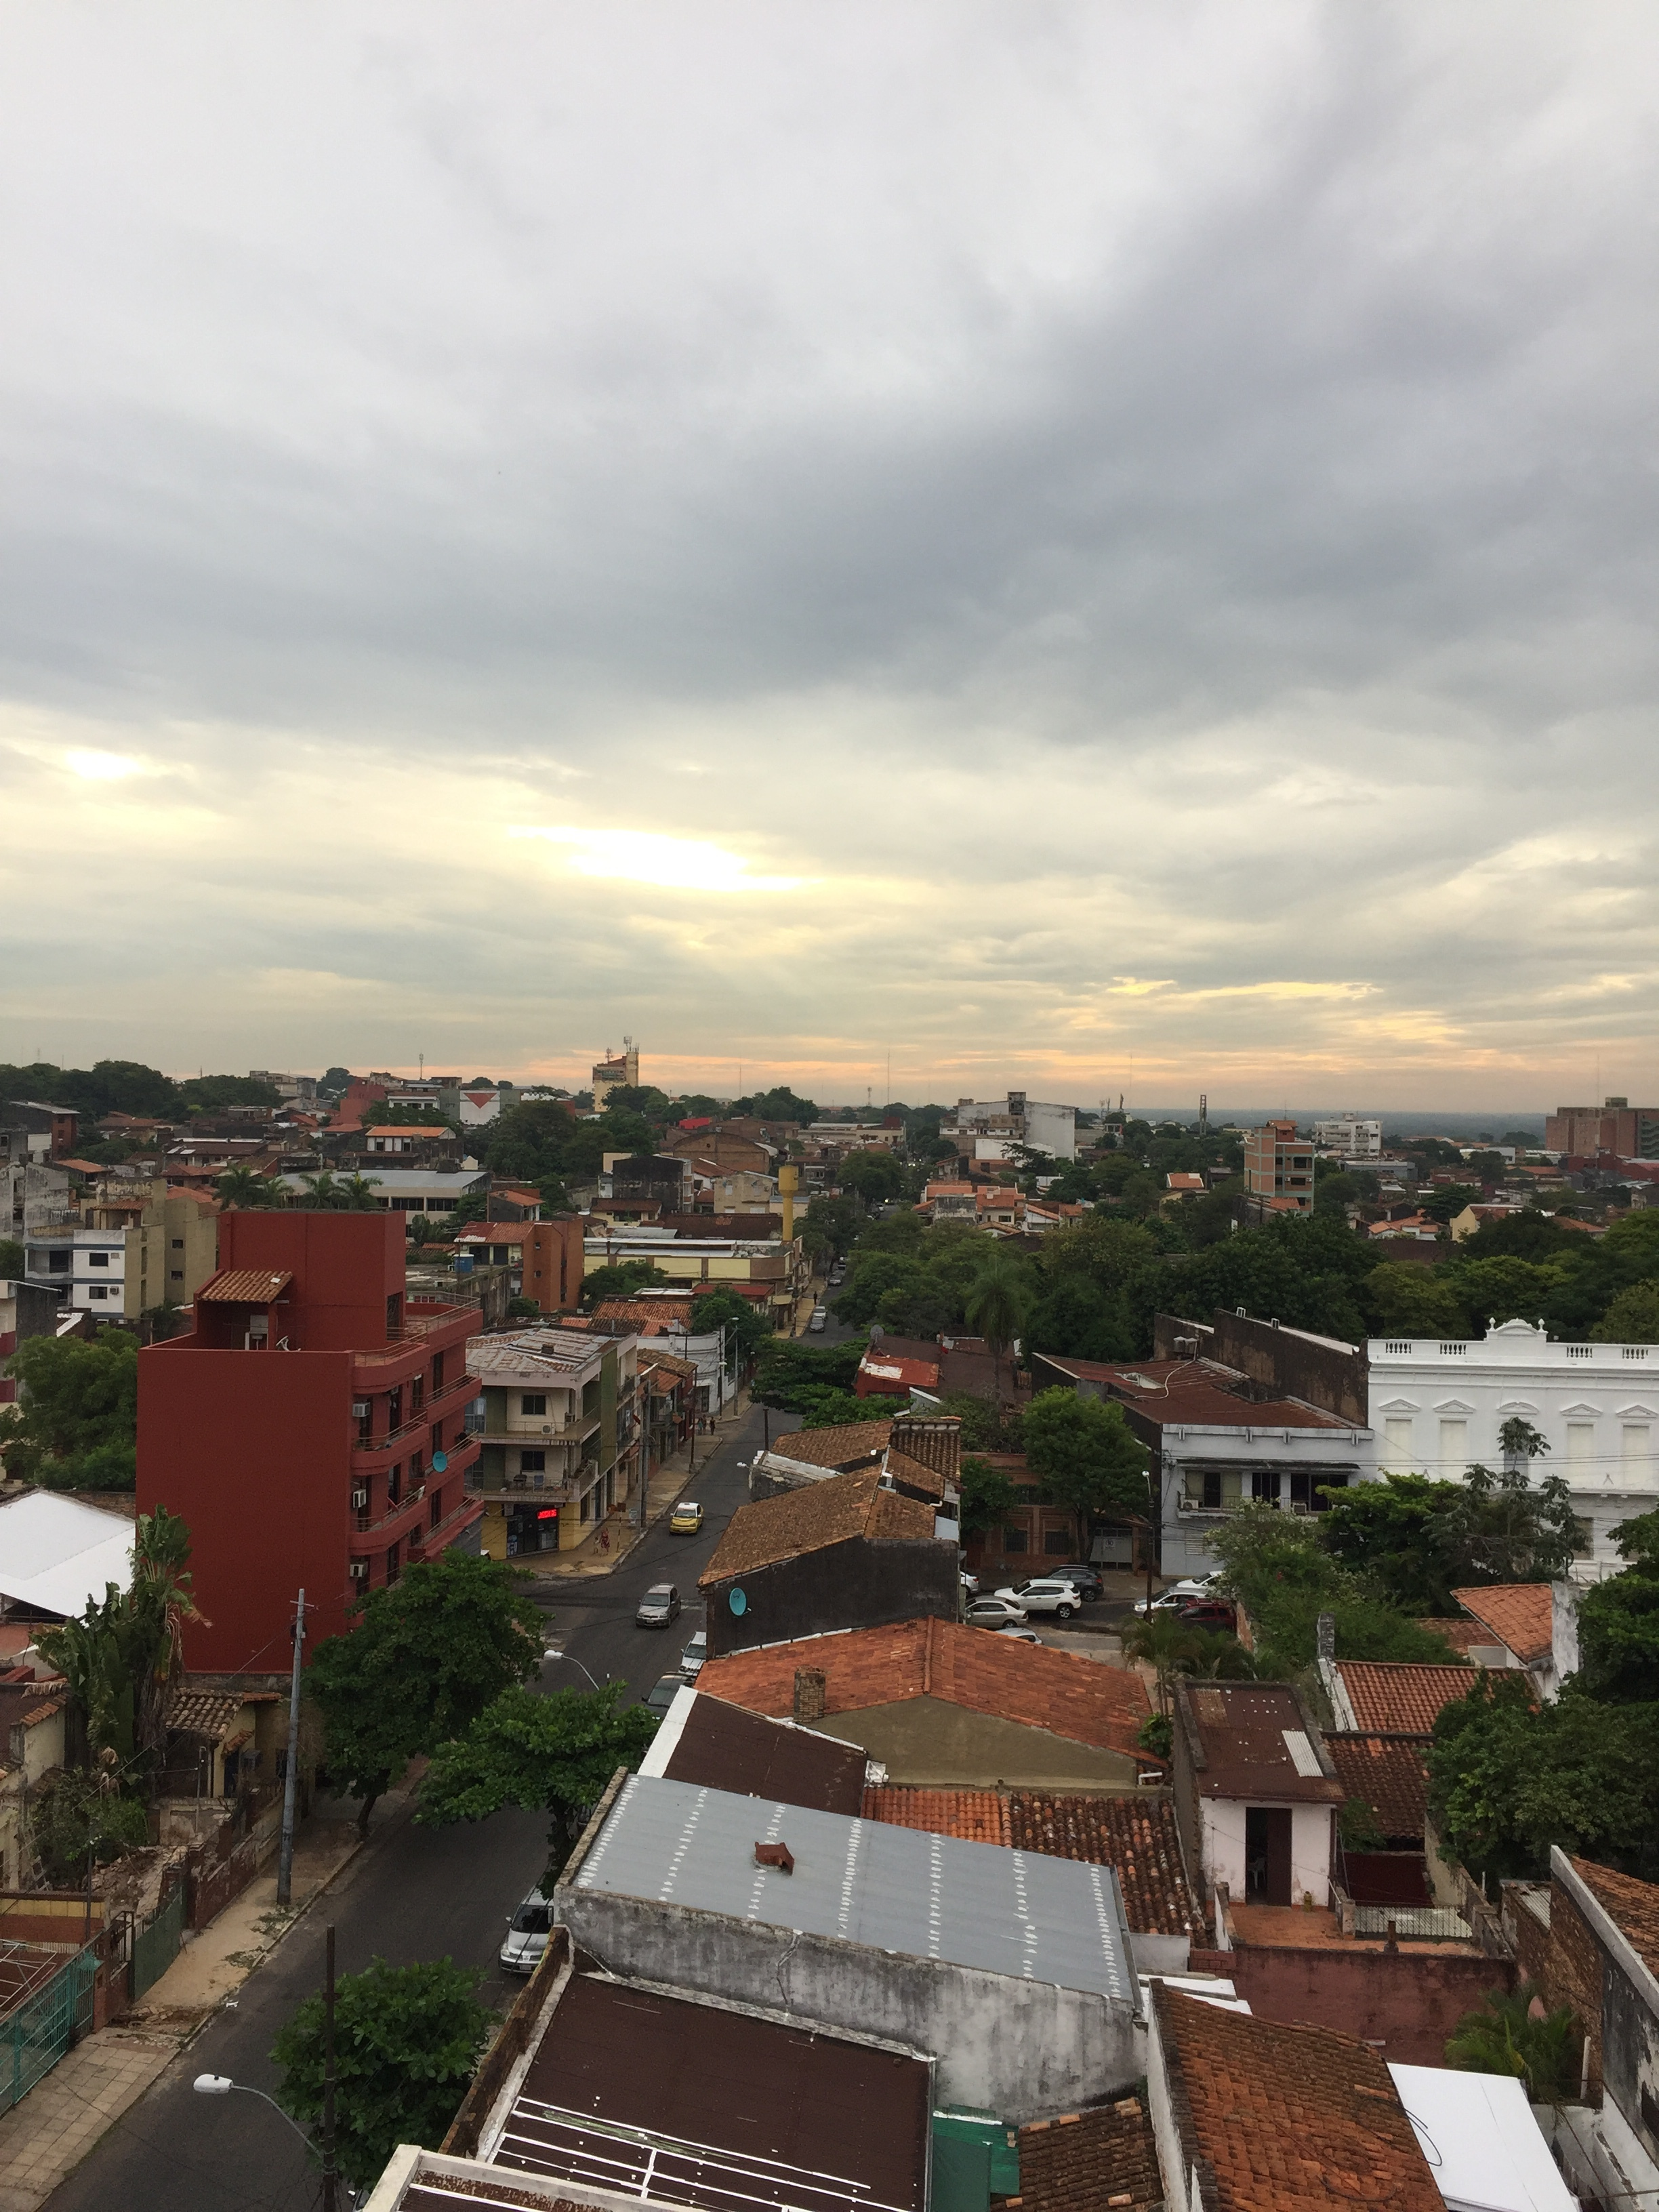 View of Asuncion in the evening after a rain shower